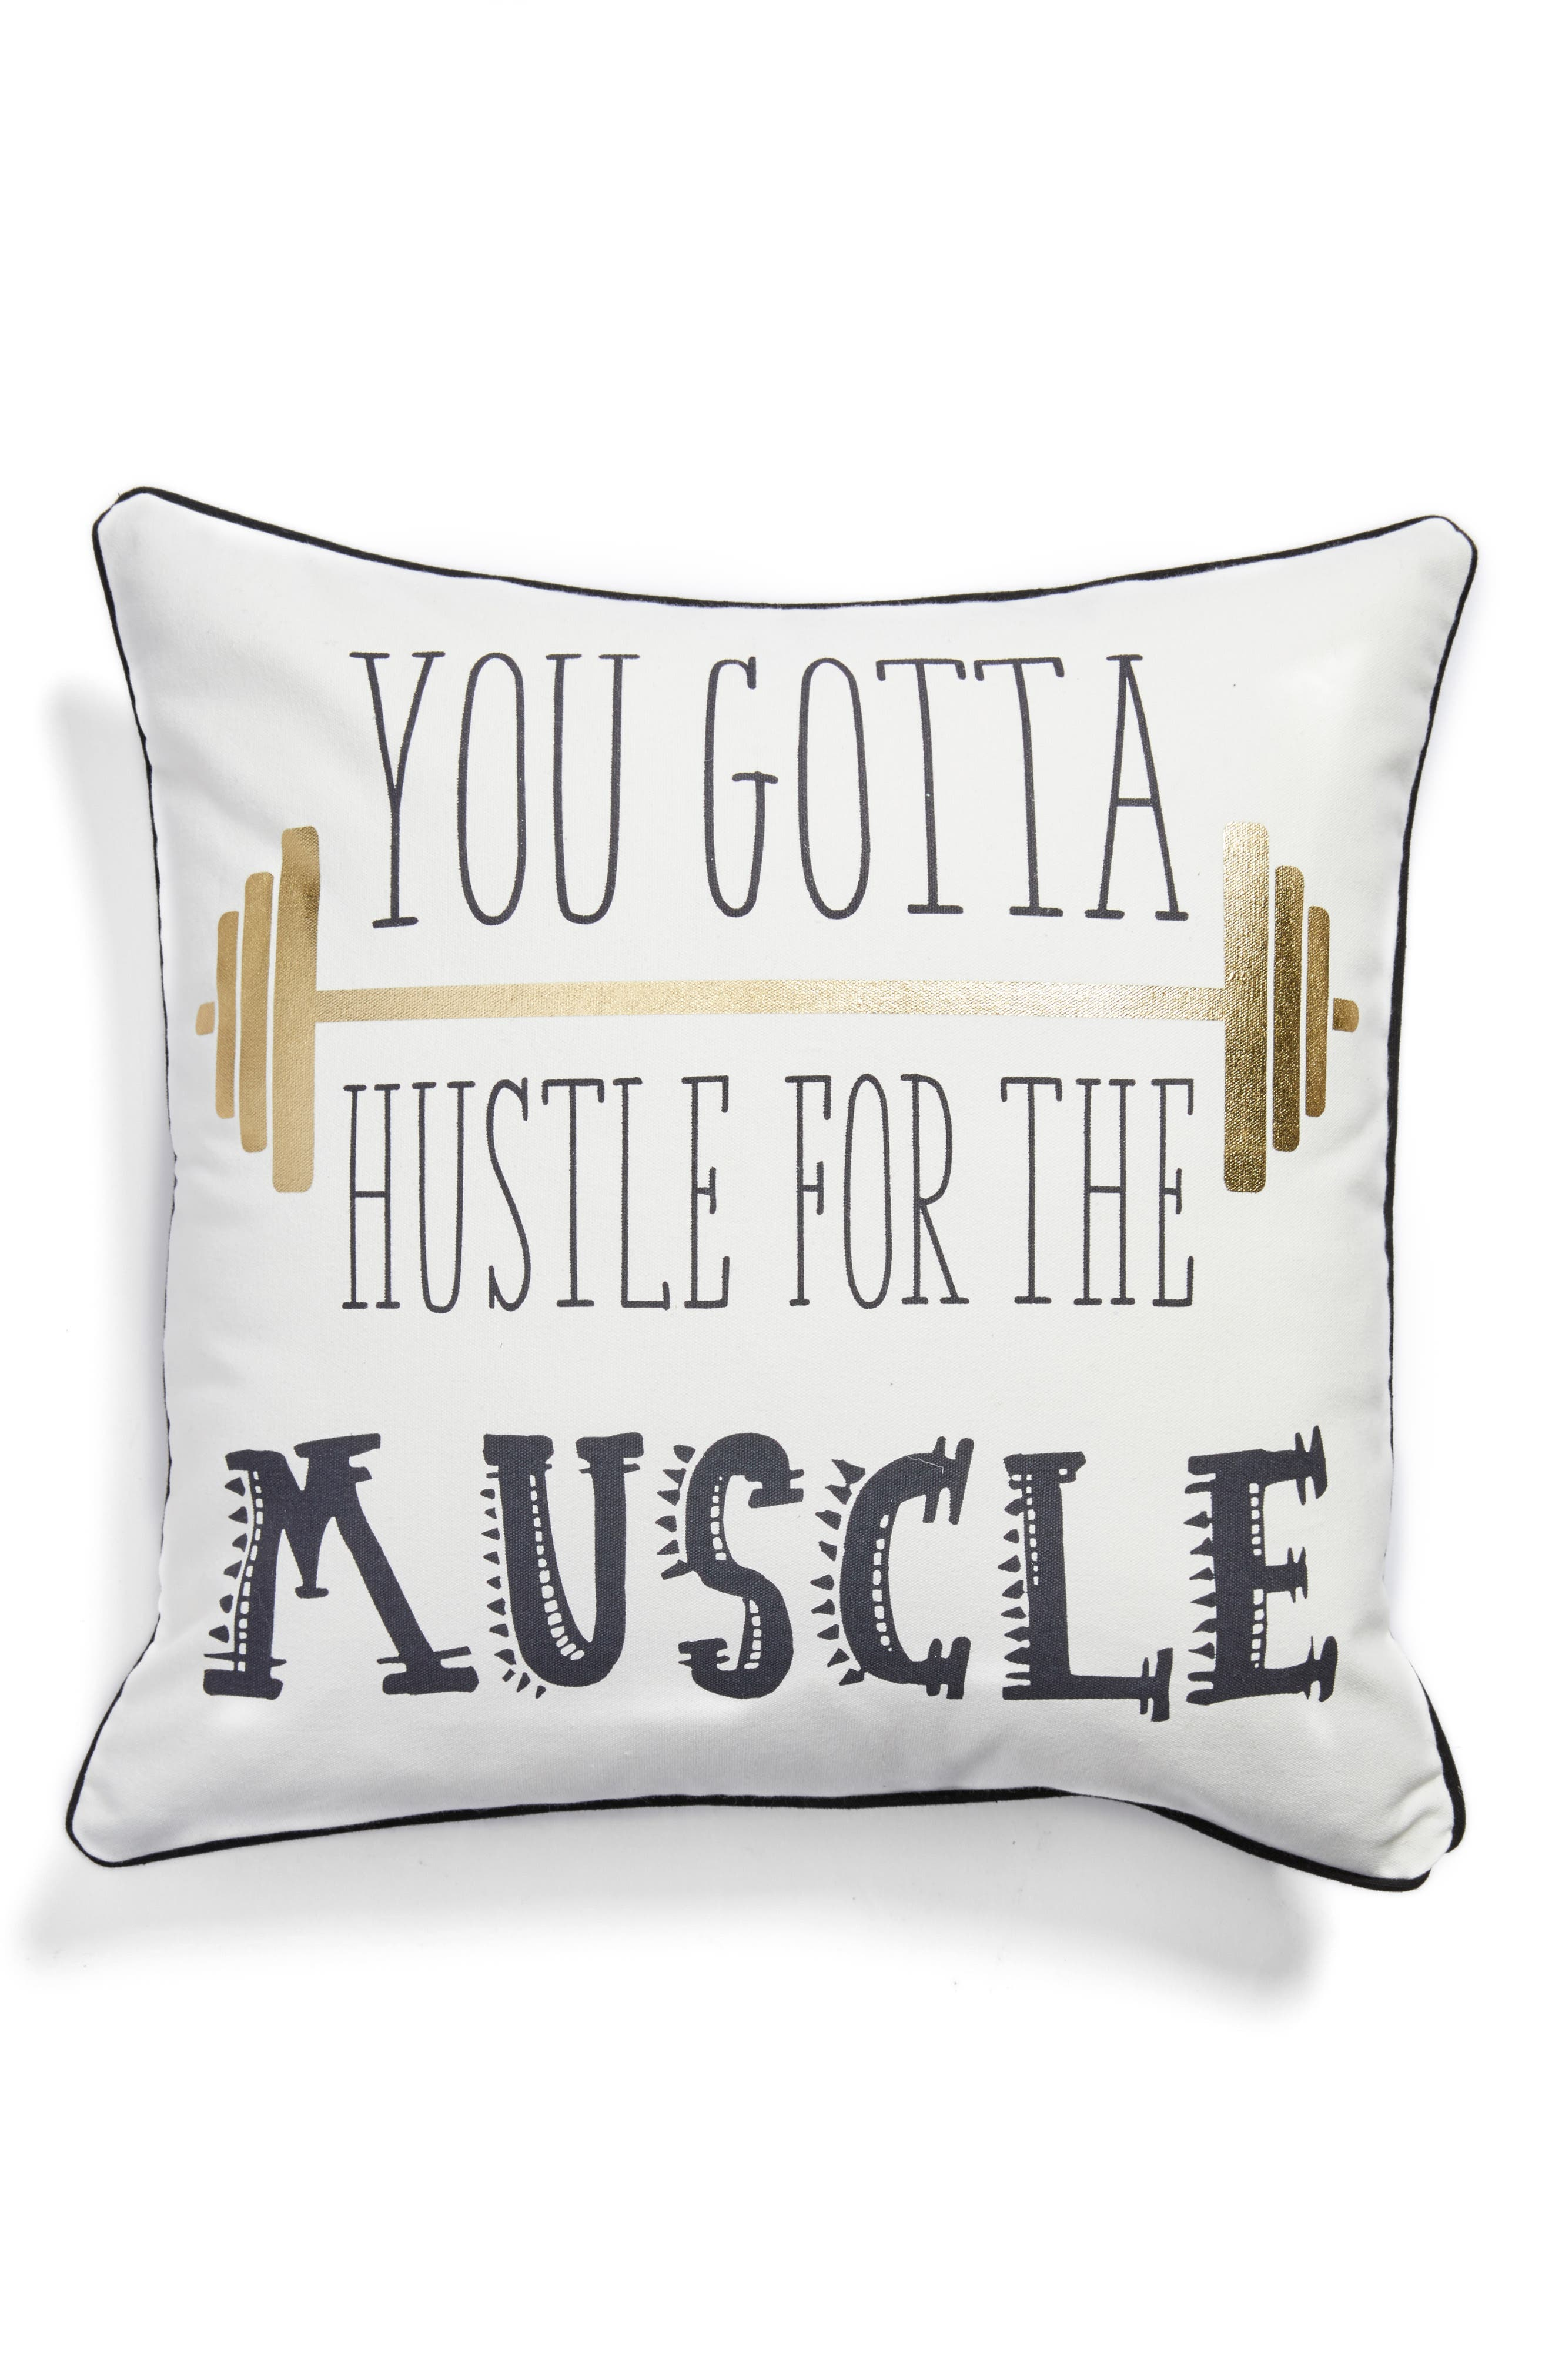 Hustle for the Muscle Pillow,                             Main thumbnail 1, color,                             White